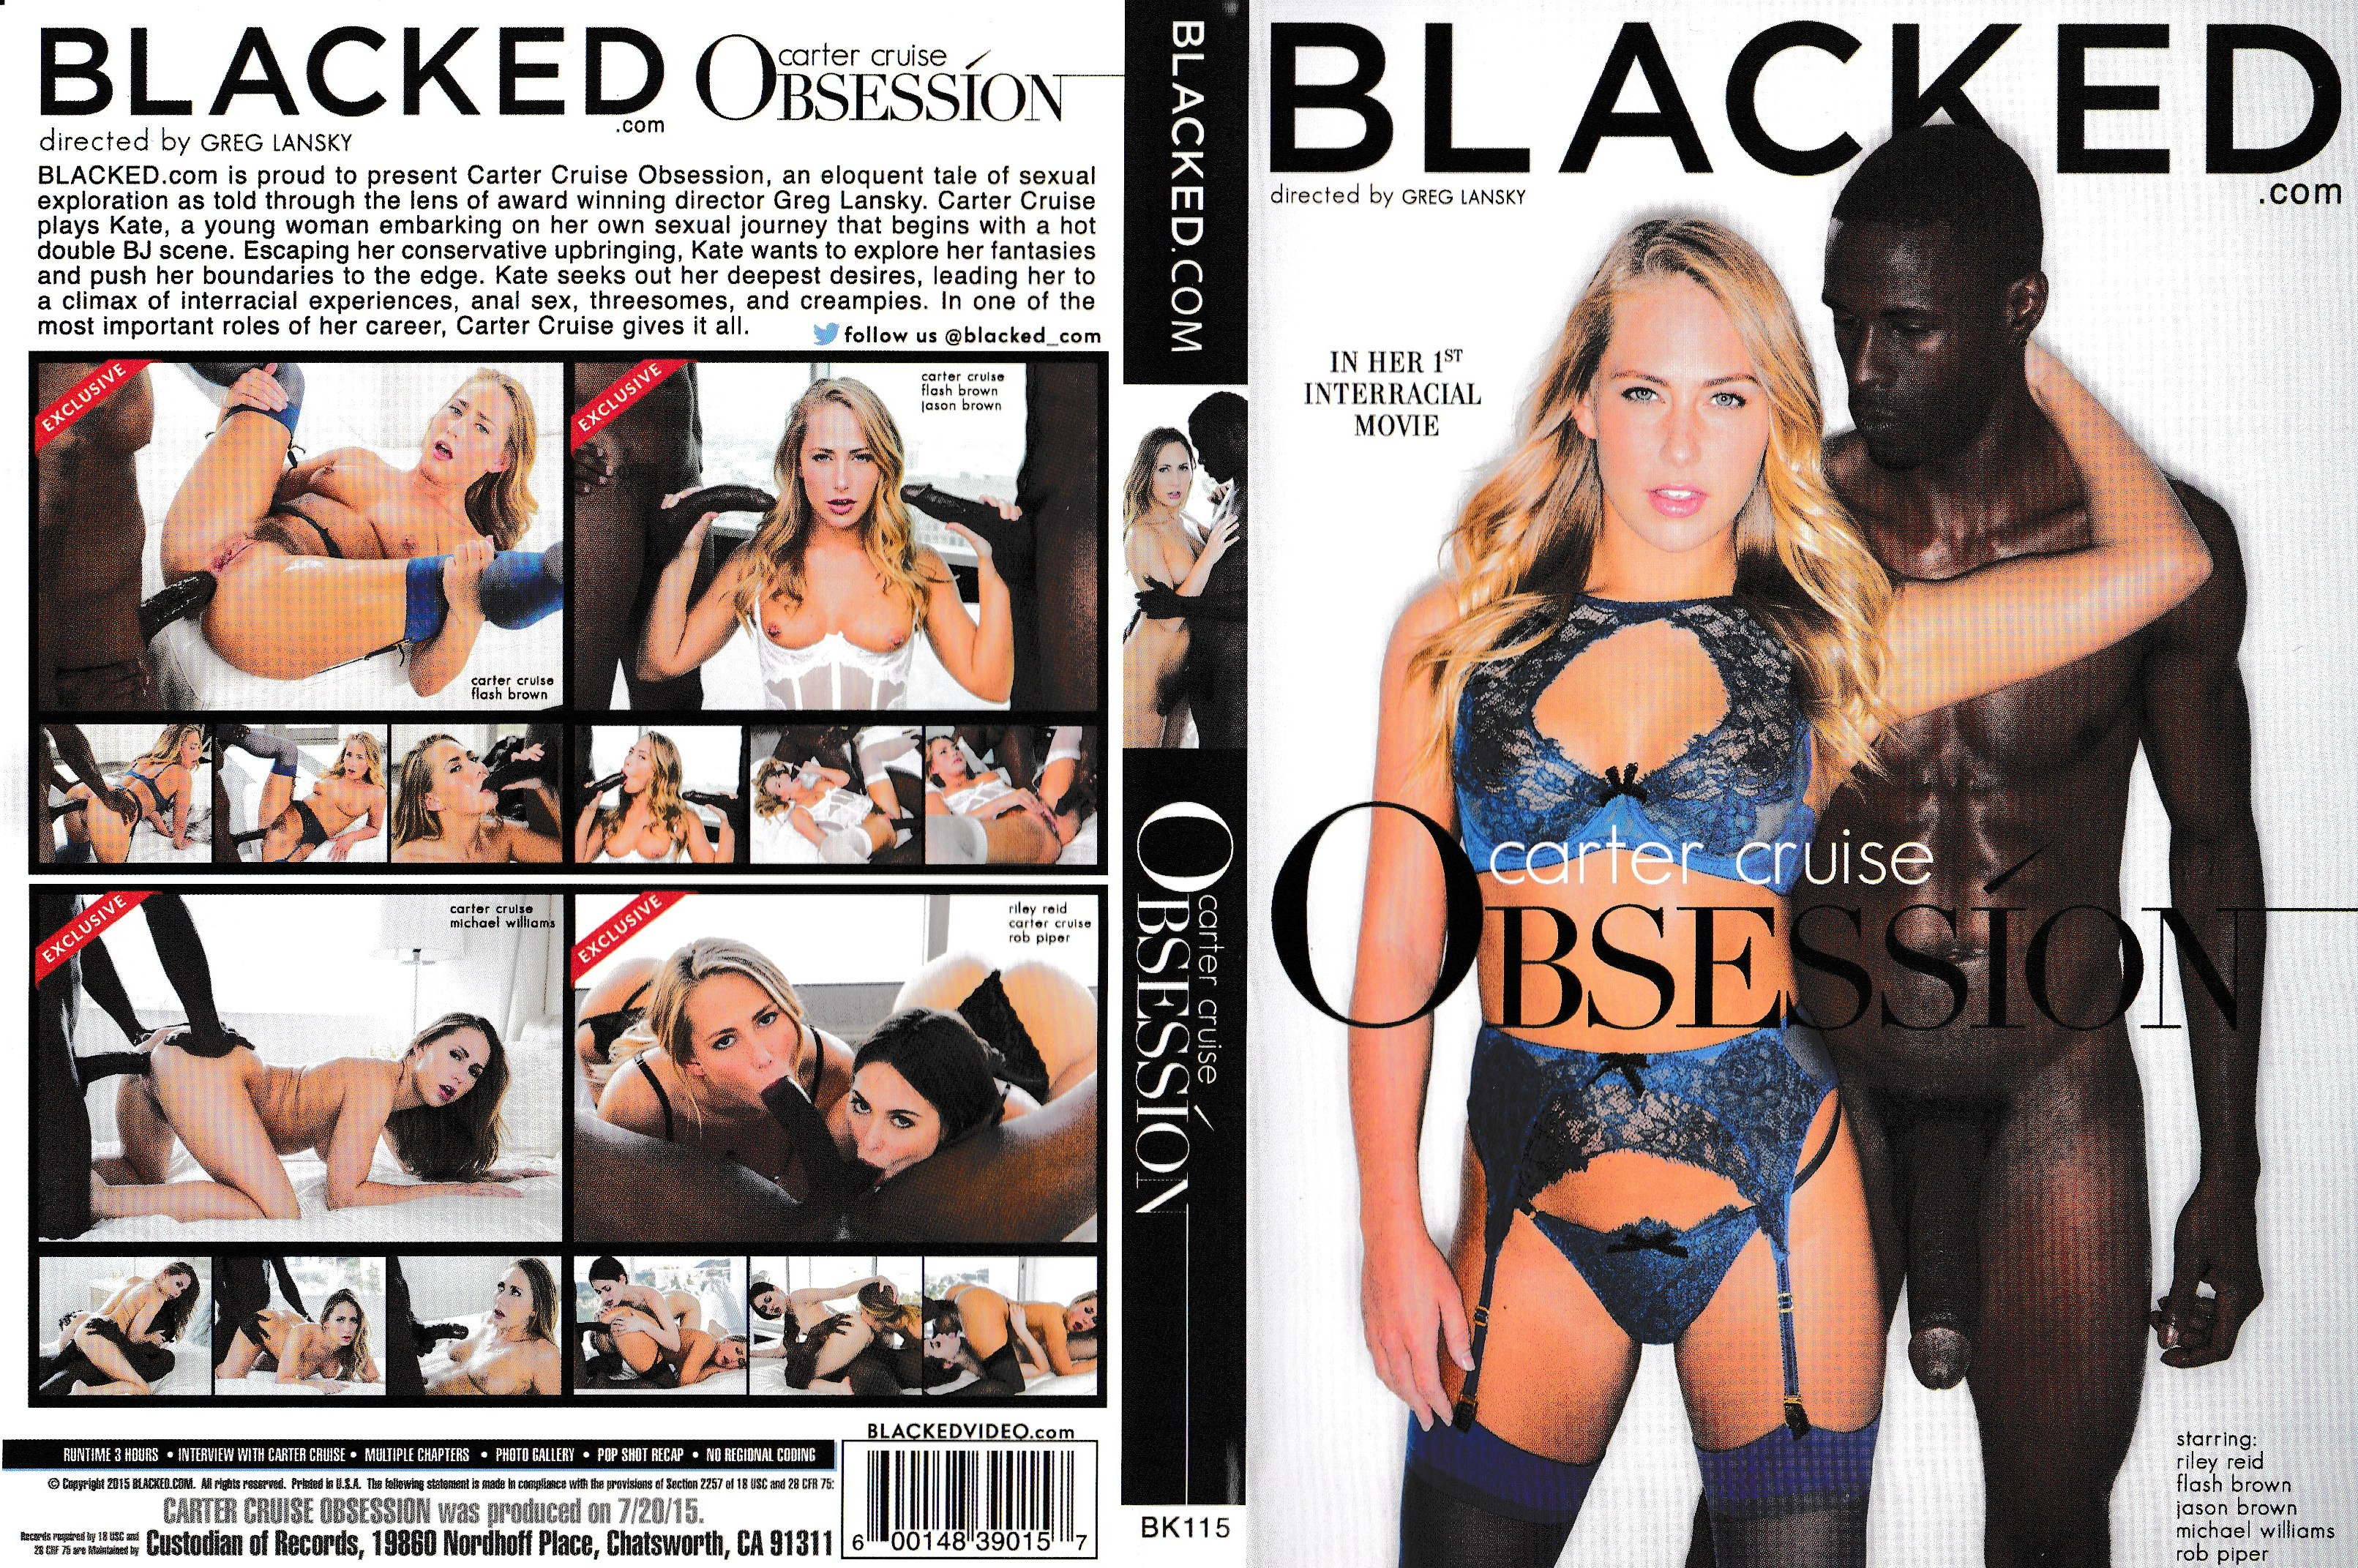 Ch 9:  Carter Cruise Obsession